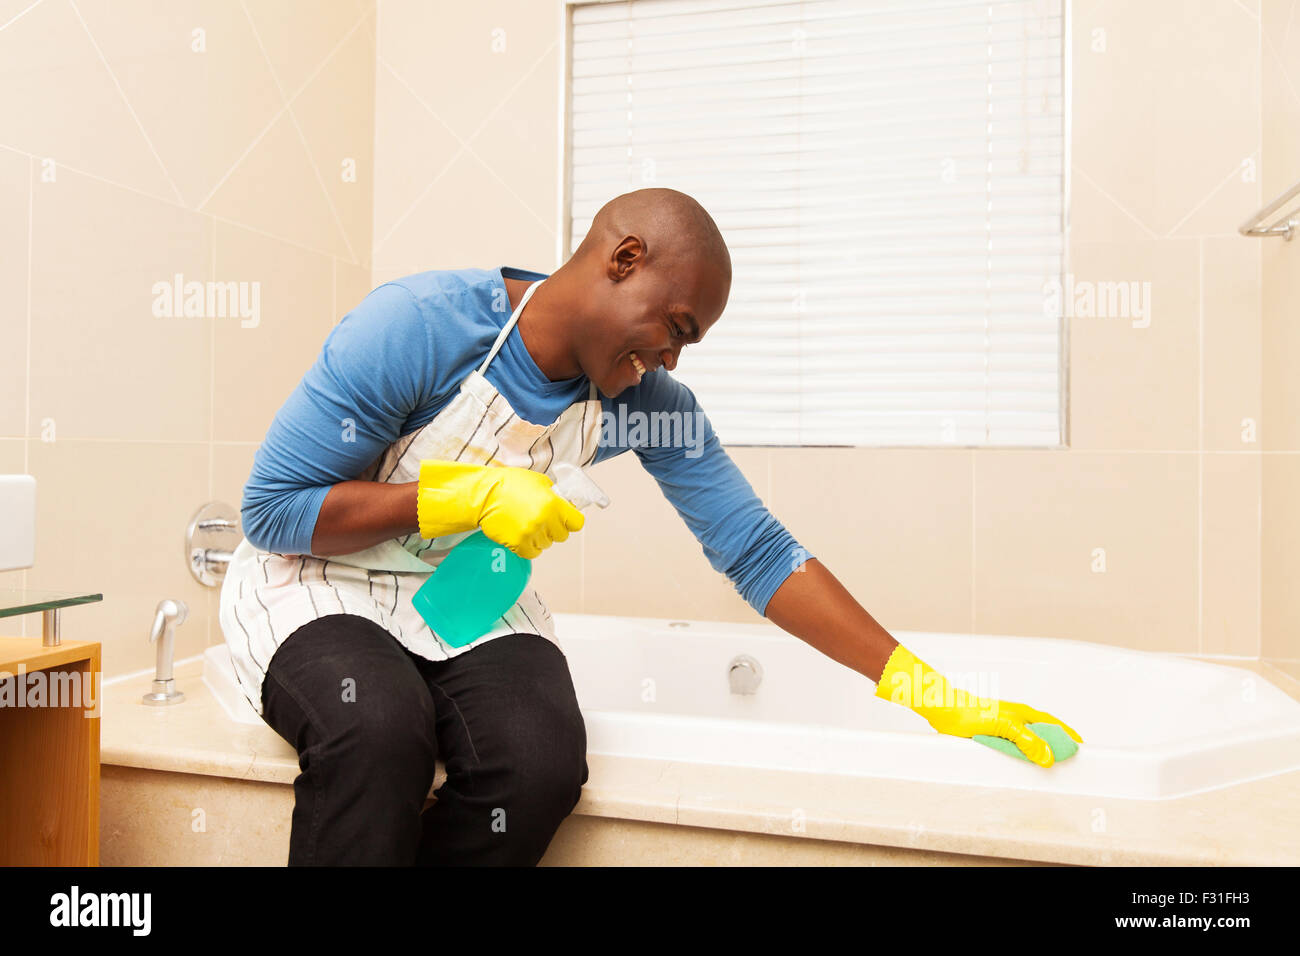 happy African American man cleaning up bathtub at home - Stock Image